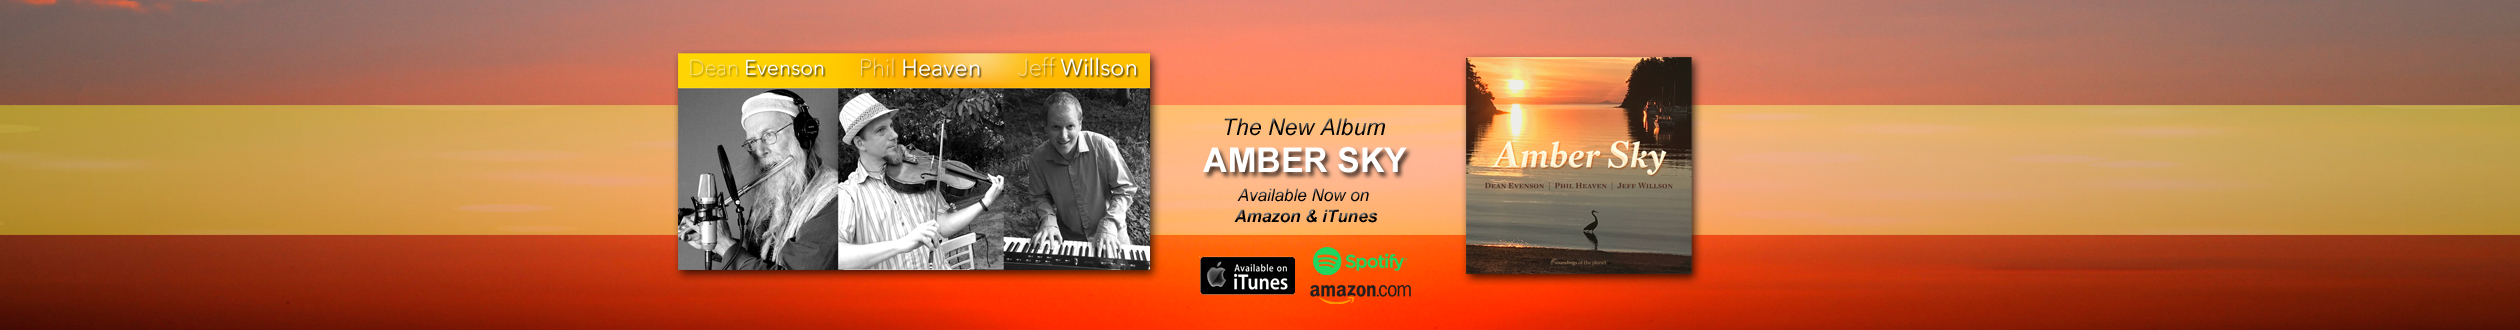 Amber-Sky-Slider-album-now-out_edited-2